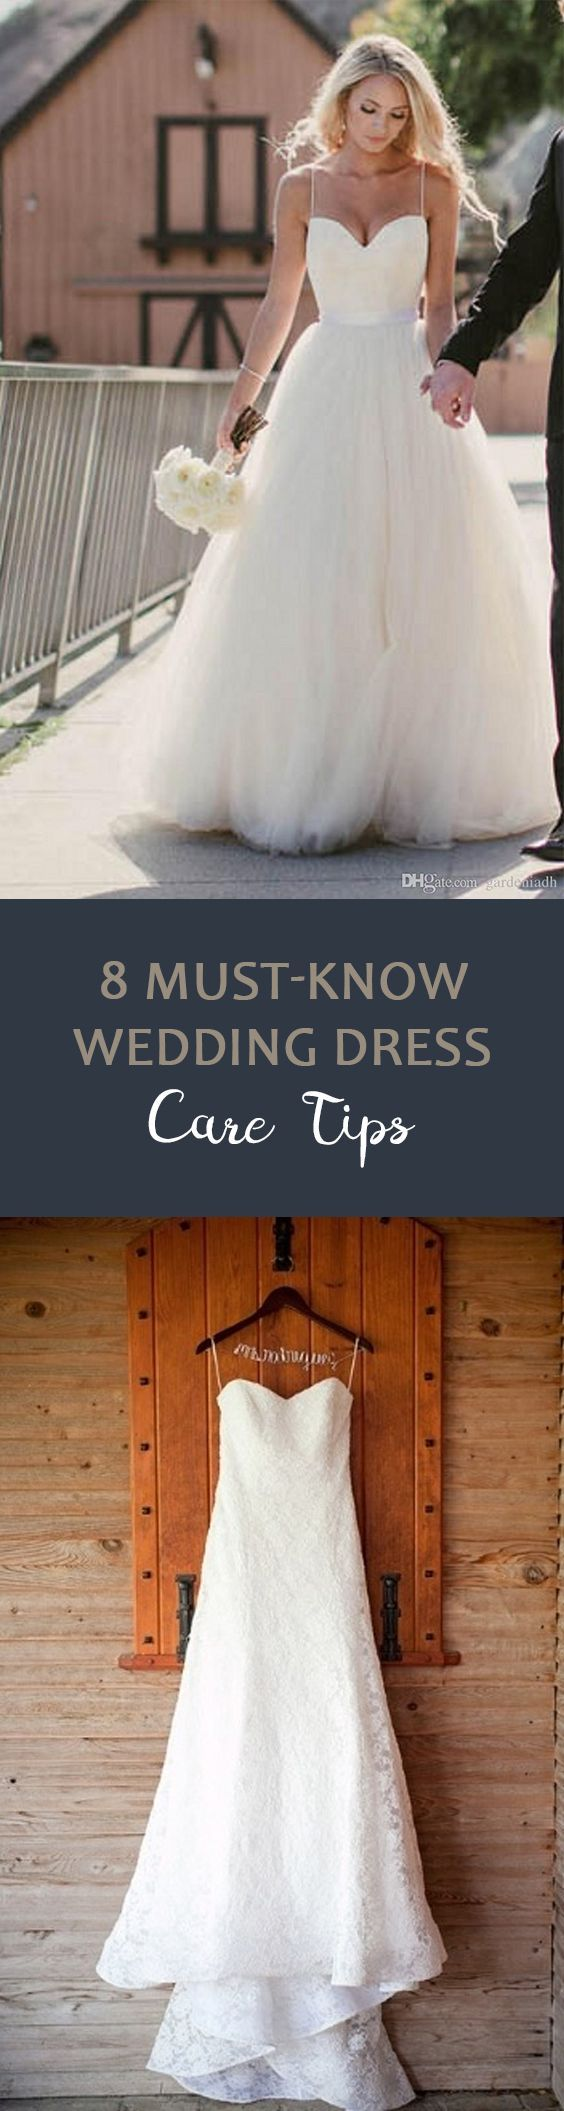 How to Care For Your Wedding Dress, Wedding Dress TIps, Wedding Dress Care Tips, How to Care for Your Wedding Dress, Wedding Dress Care, Wedding Dress Storage TIps, How to Store Your Wedding Dress, Popular Pin